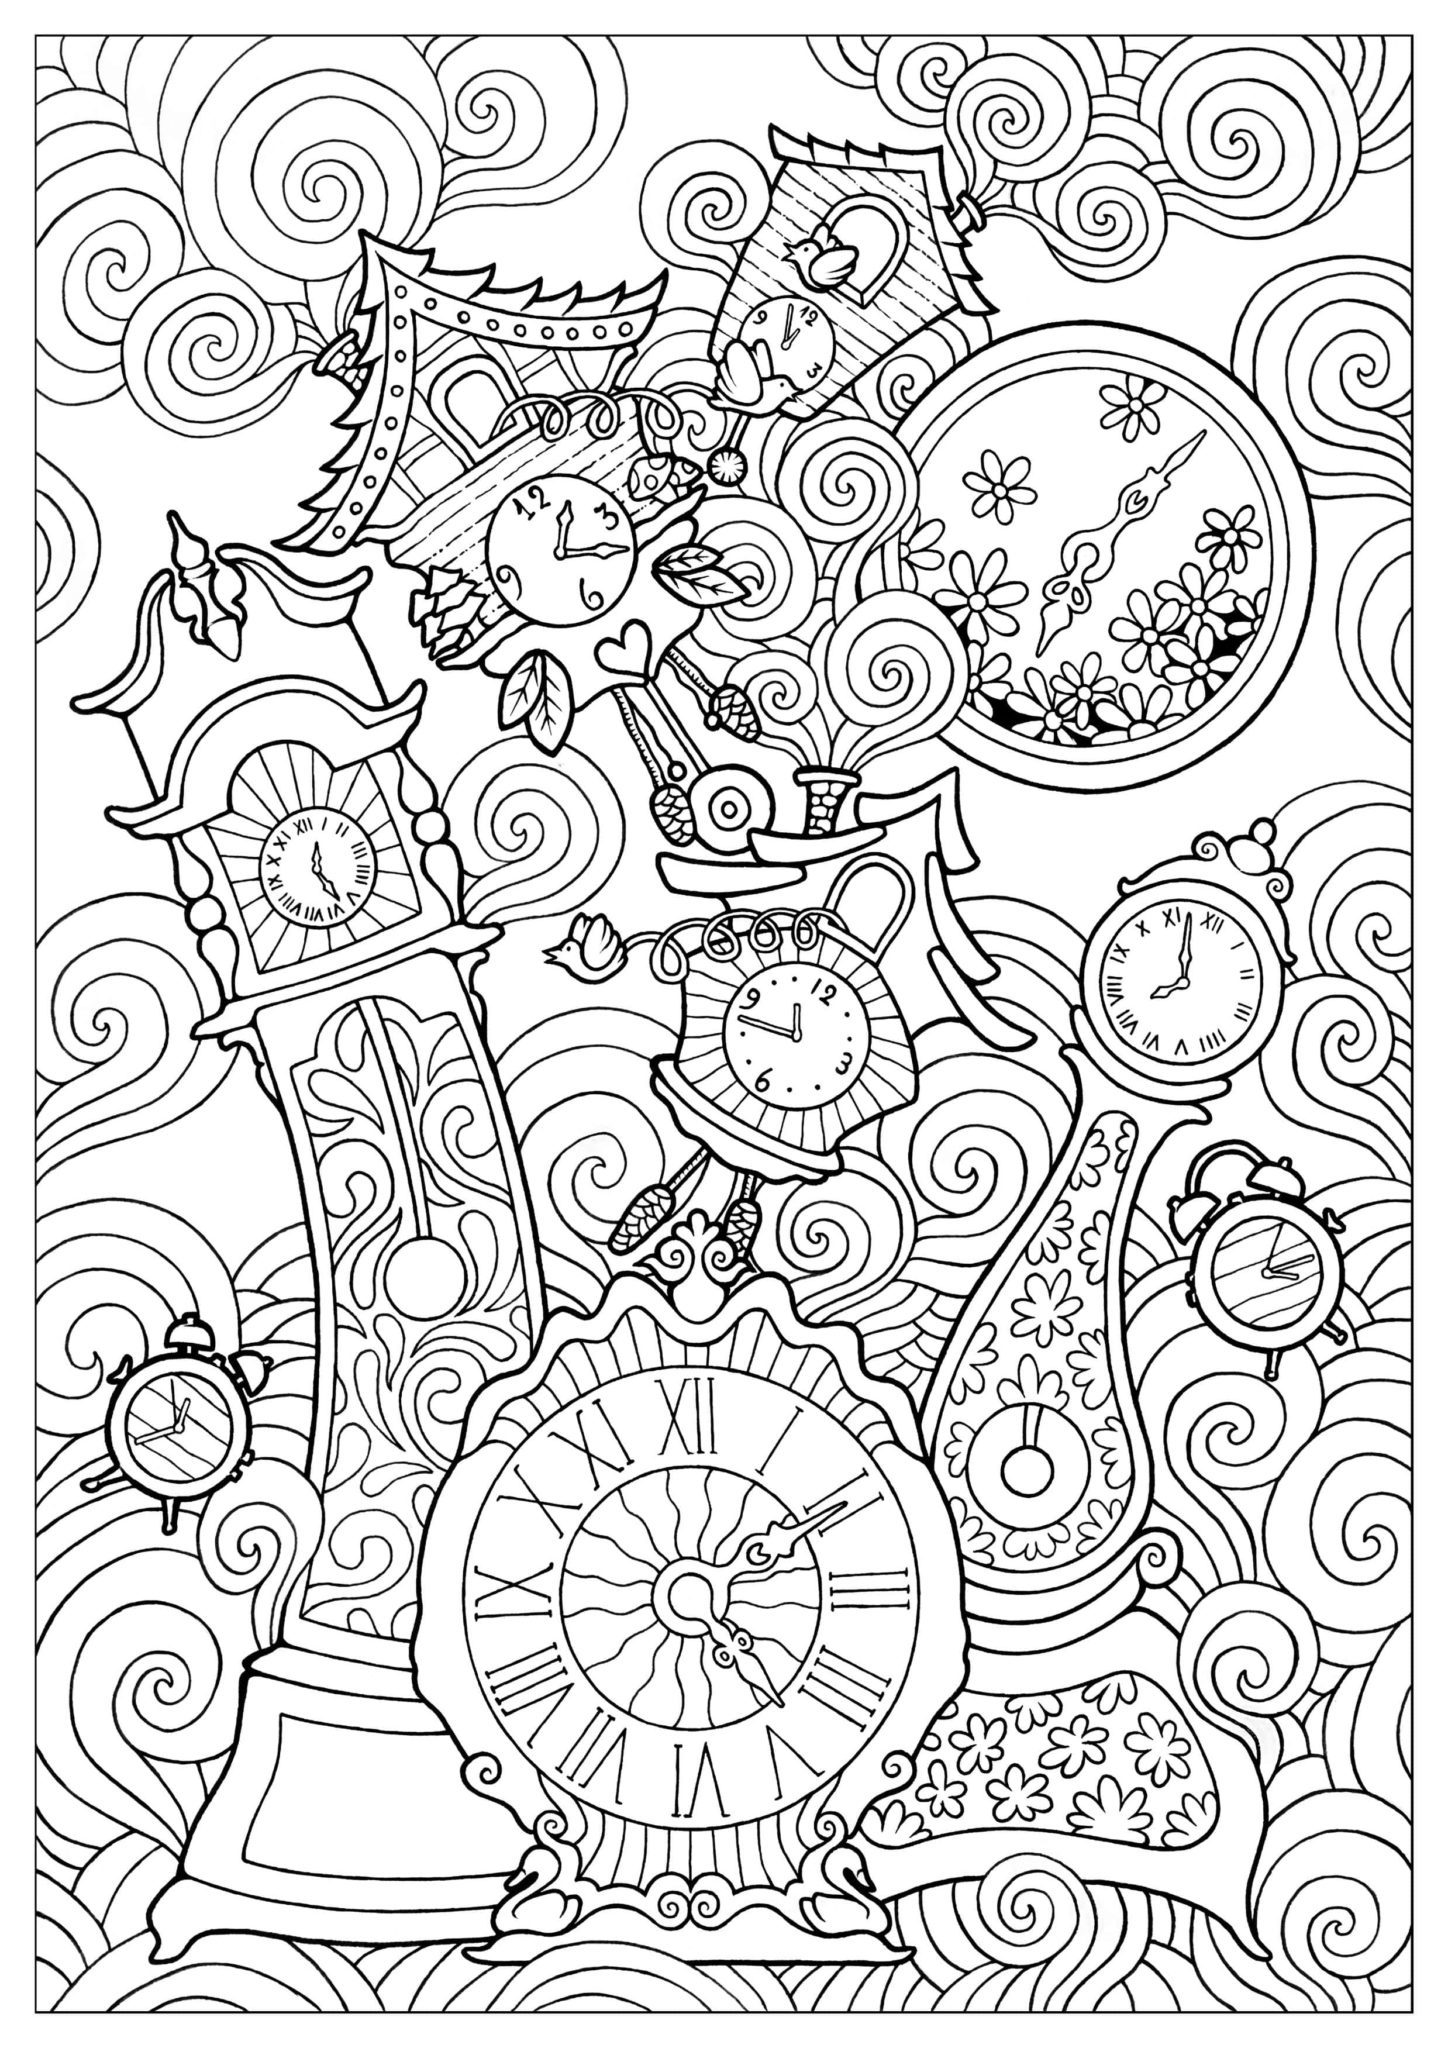 adult coloring that are printable and fun happier human free justcolor quirky clocks coloring pages Free Adult Coloring Page